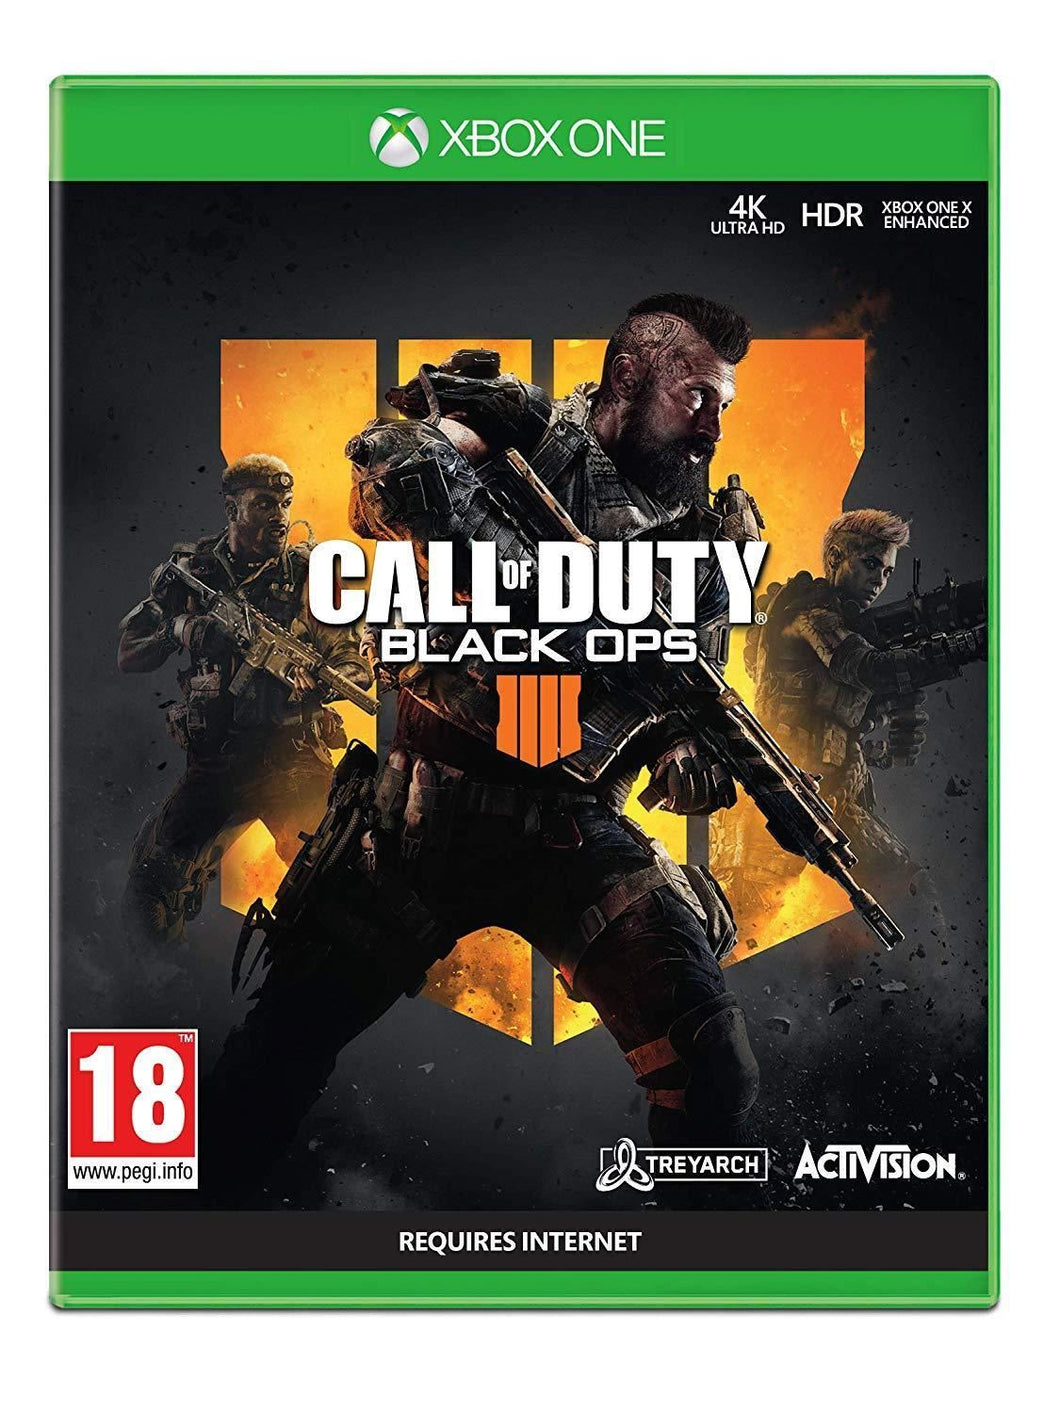 CALL OF DUTY: BLACK OPS 4 - 4K HDR XBOX ONE X ENHANCED